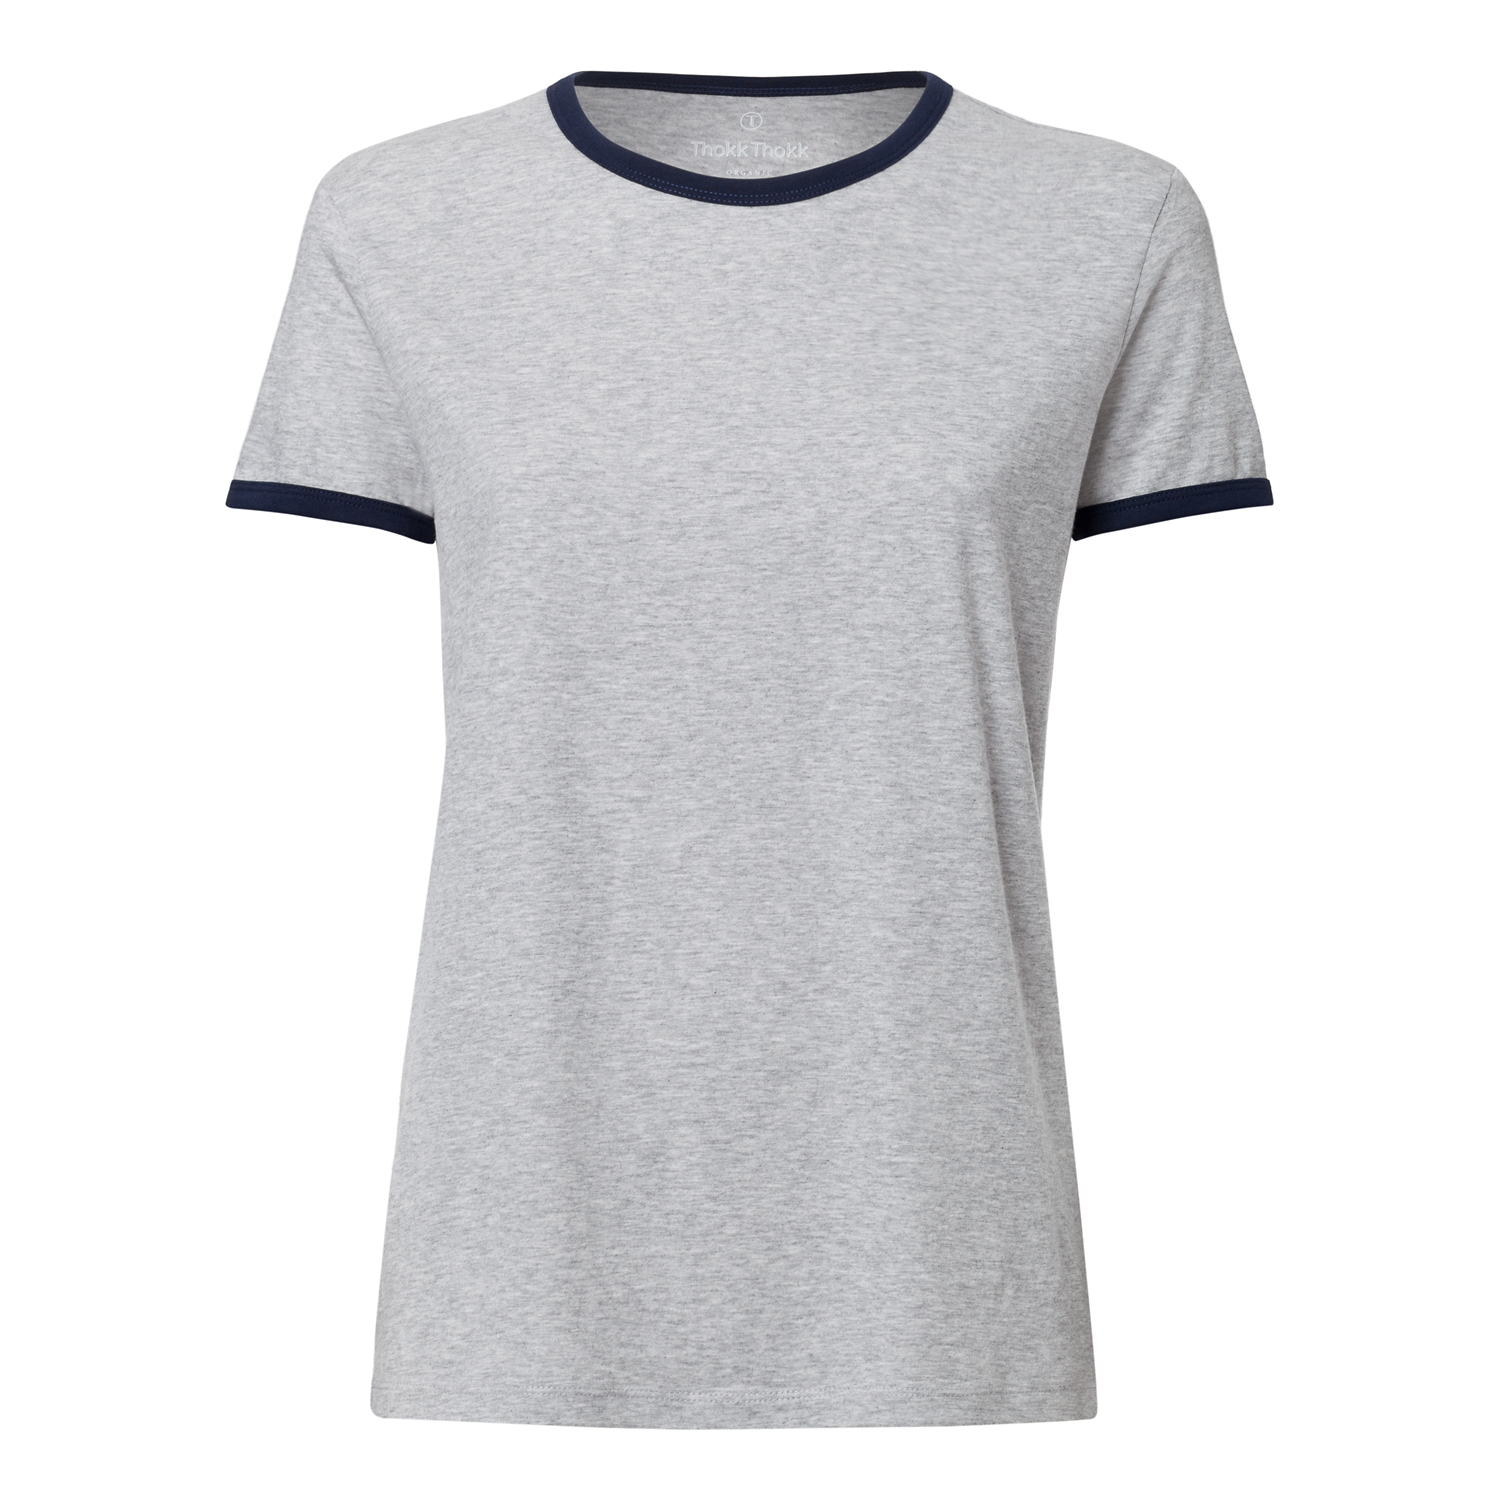 Damen Ringer T-Shirt Heather Grey/French Navy Bio & Fair